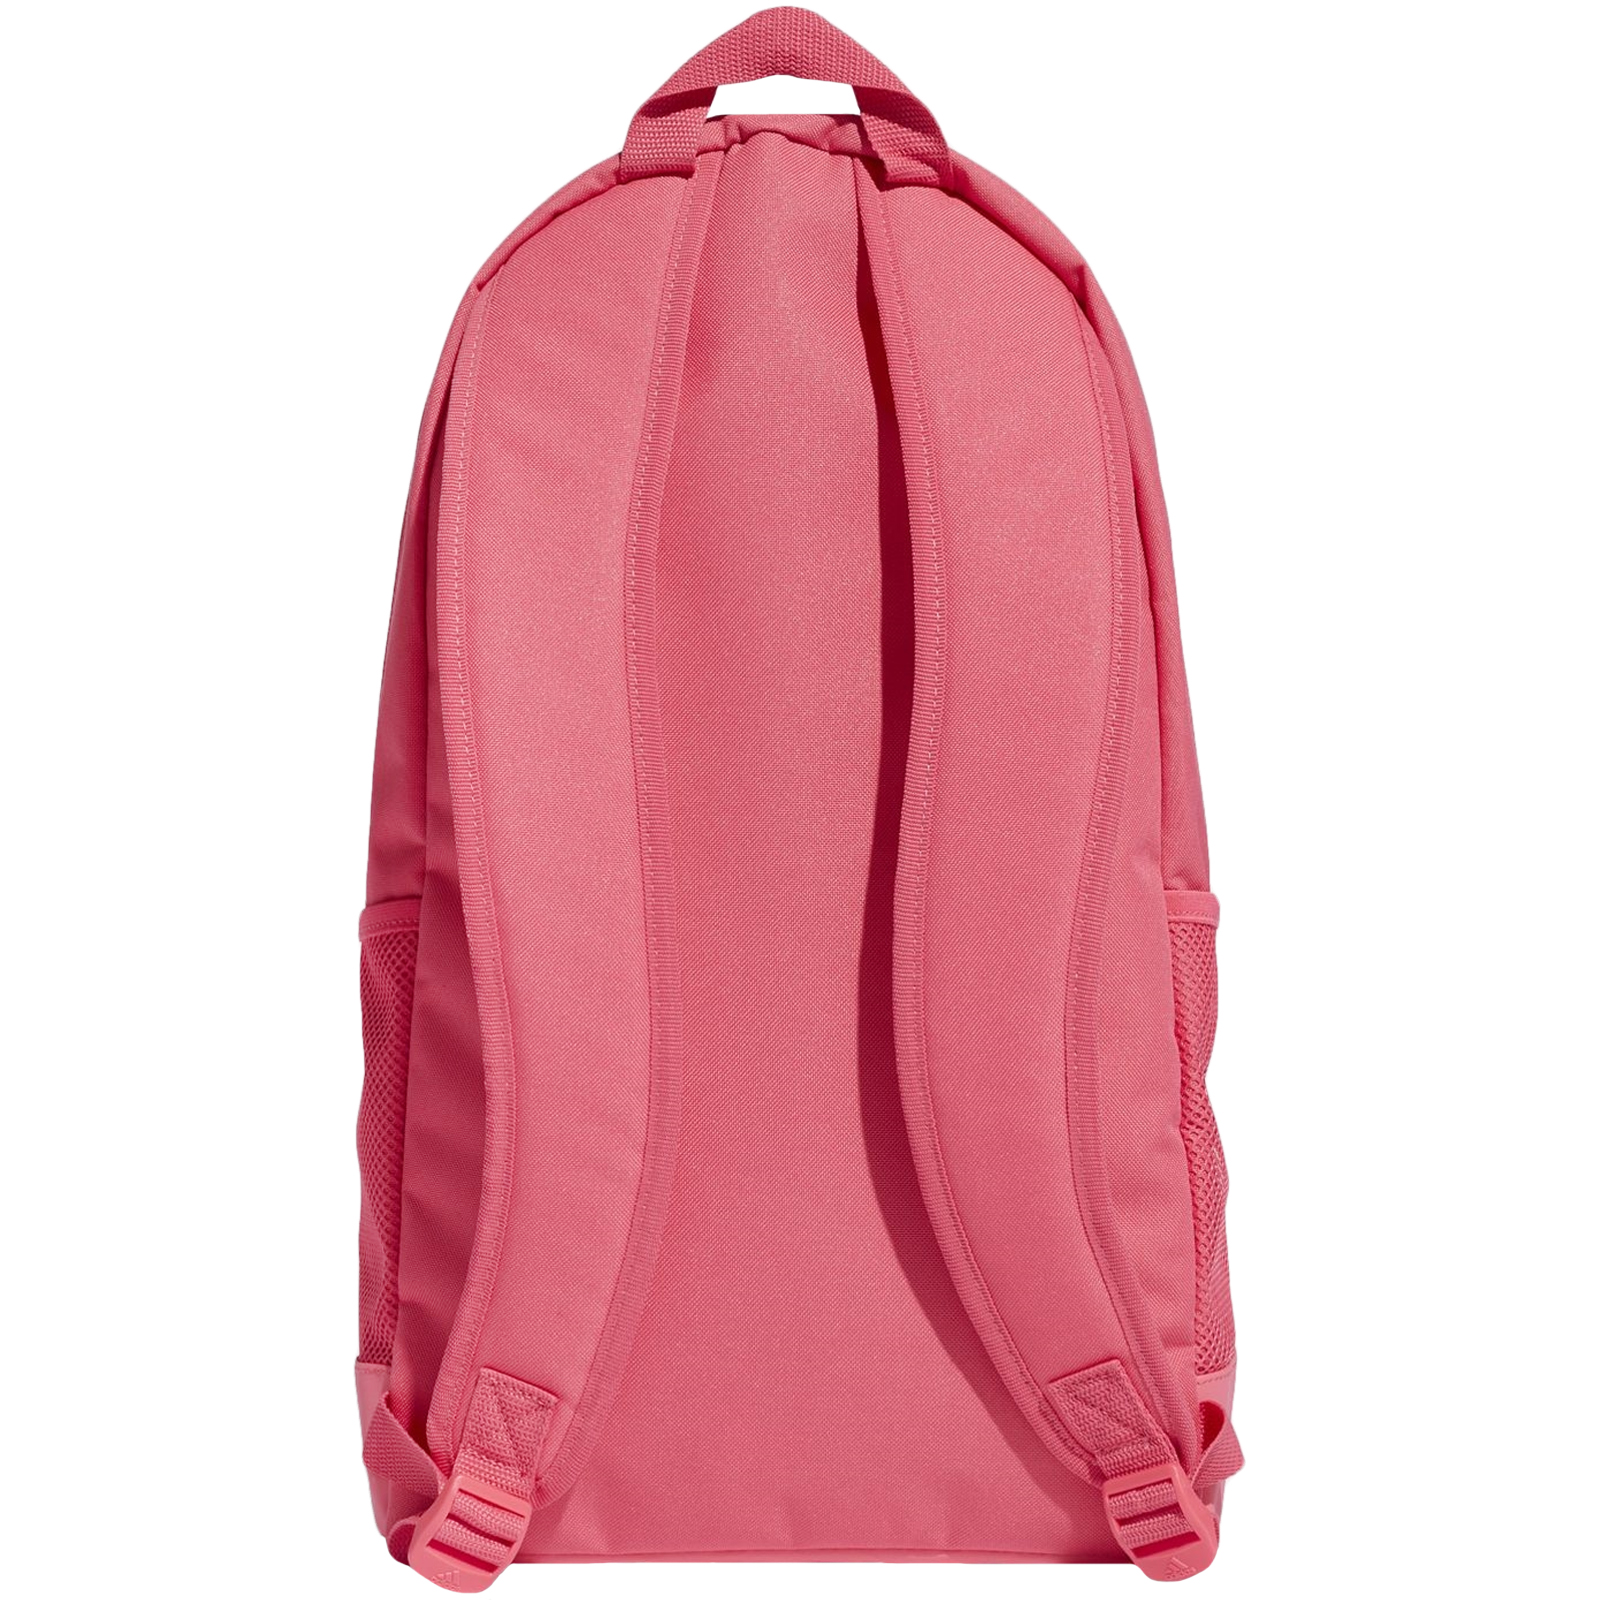 e81922f358f9 adidas Linear Performance Backpack - Pink for sale online